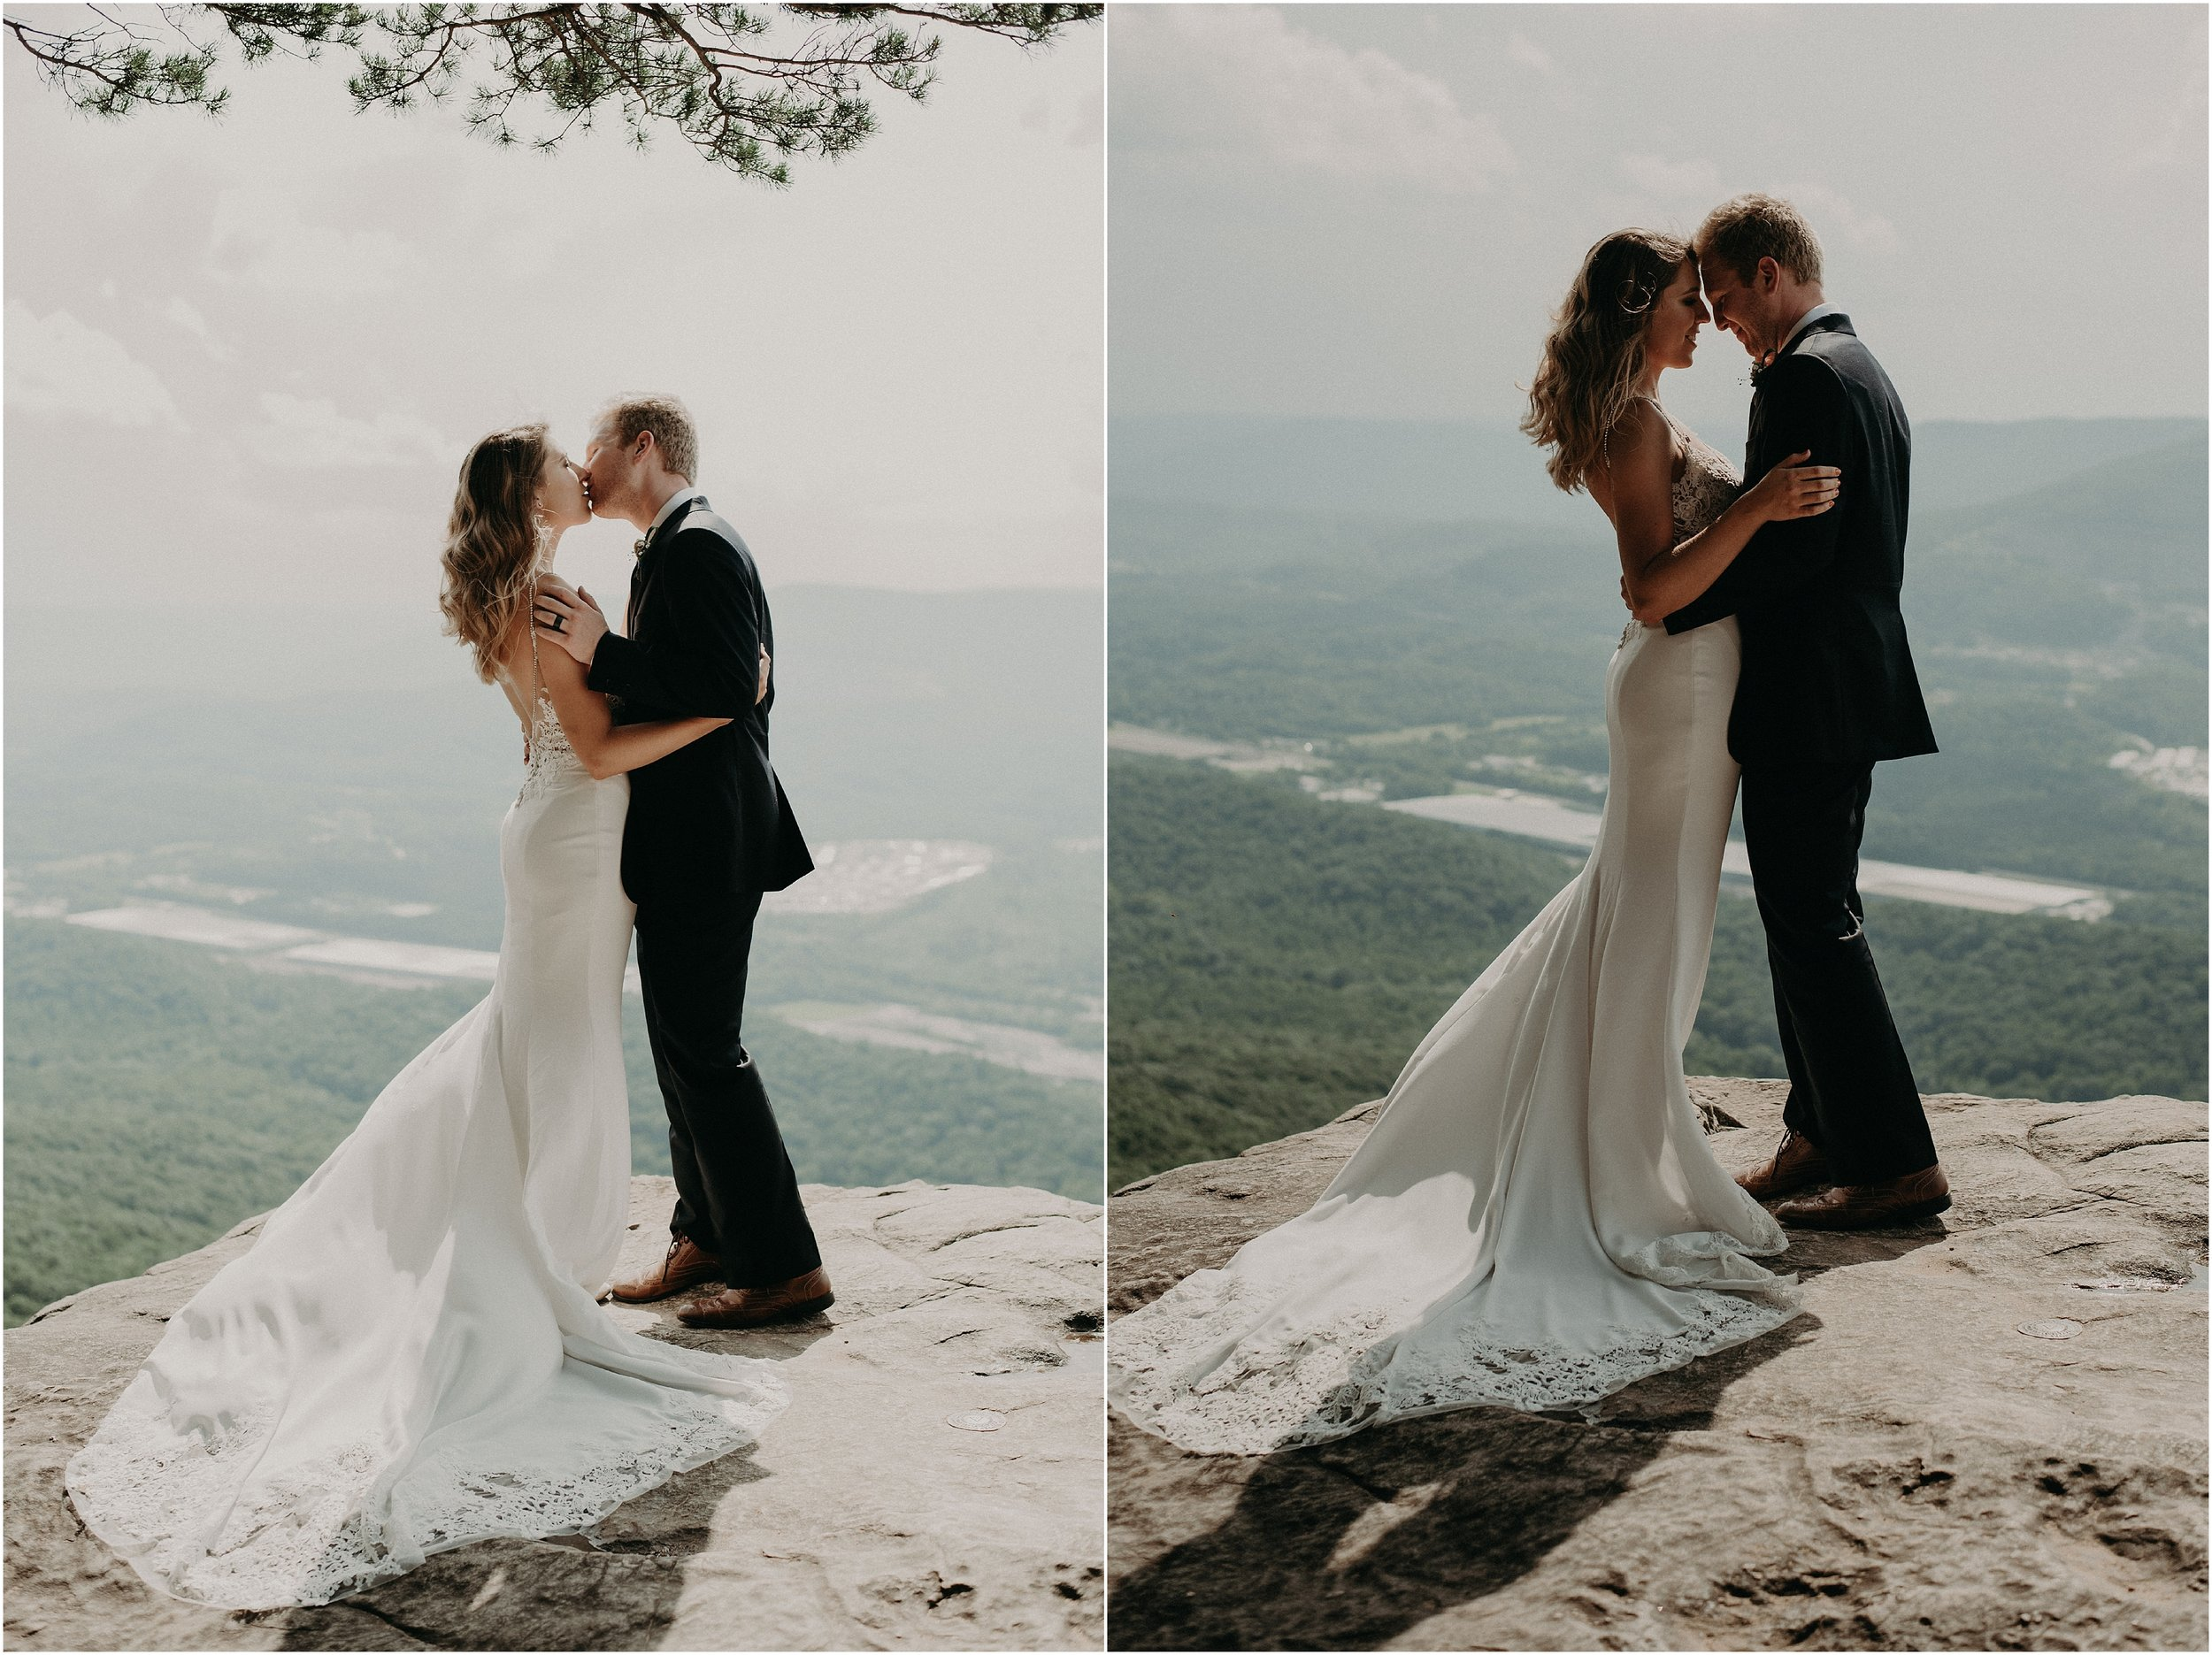 Sweeping panoramic vistas of Sunset Rock make for stunning bride and groom portraits